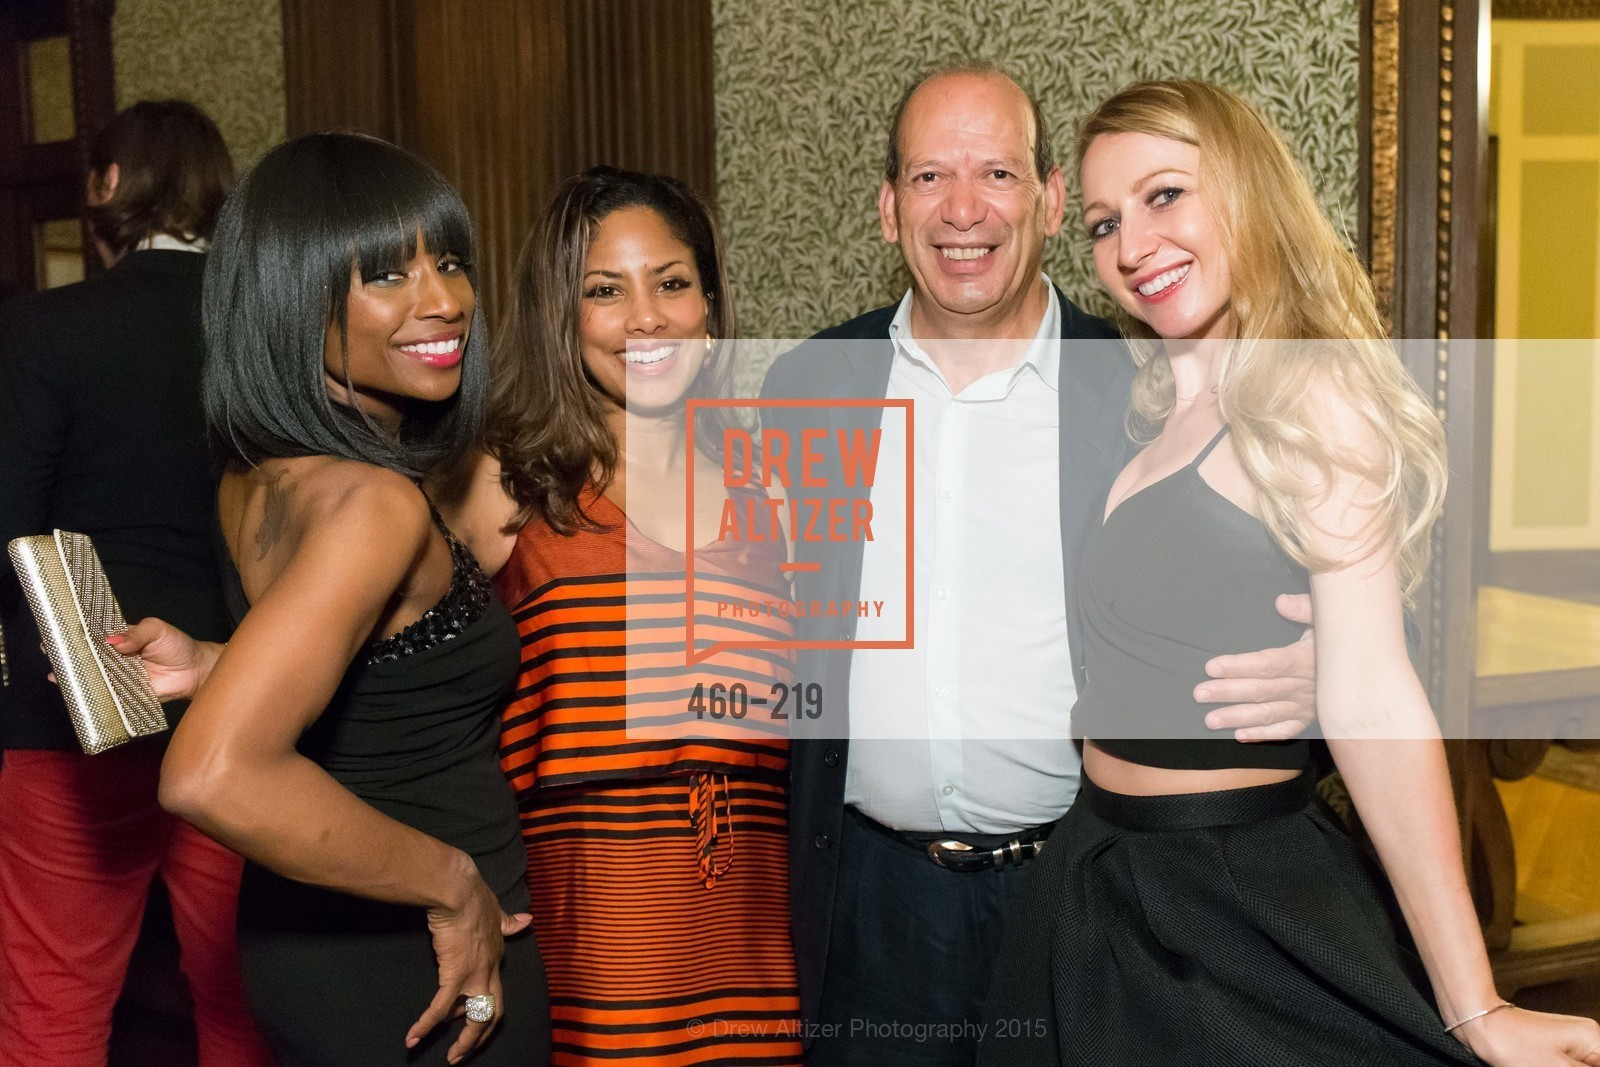 Pernella Sommerville, Nourredine Azouaou, Svetlana Jilenko, Champagne Reception & Screening of Million Dollar Listing San Francisco, University Club. 800 Powell St, August 5th, 2015,Drew Altizer, Drew Altizer Photography, full-service agency, private events, San Francisco photographer, photographer california